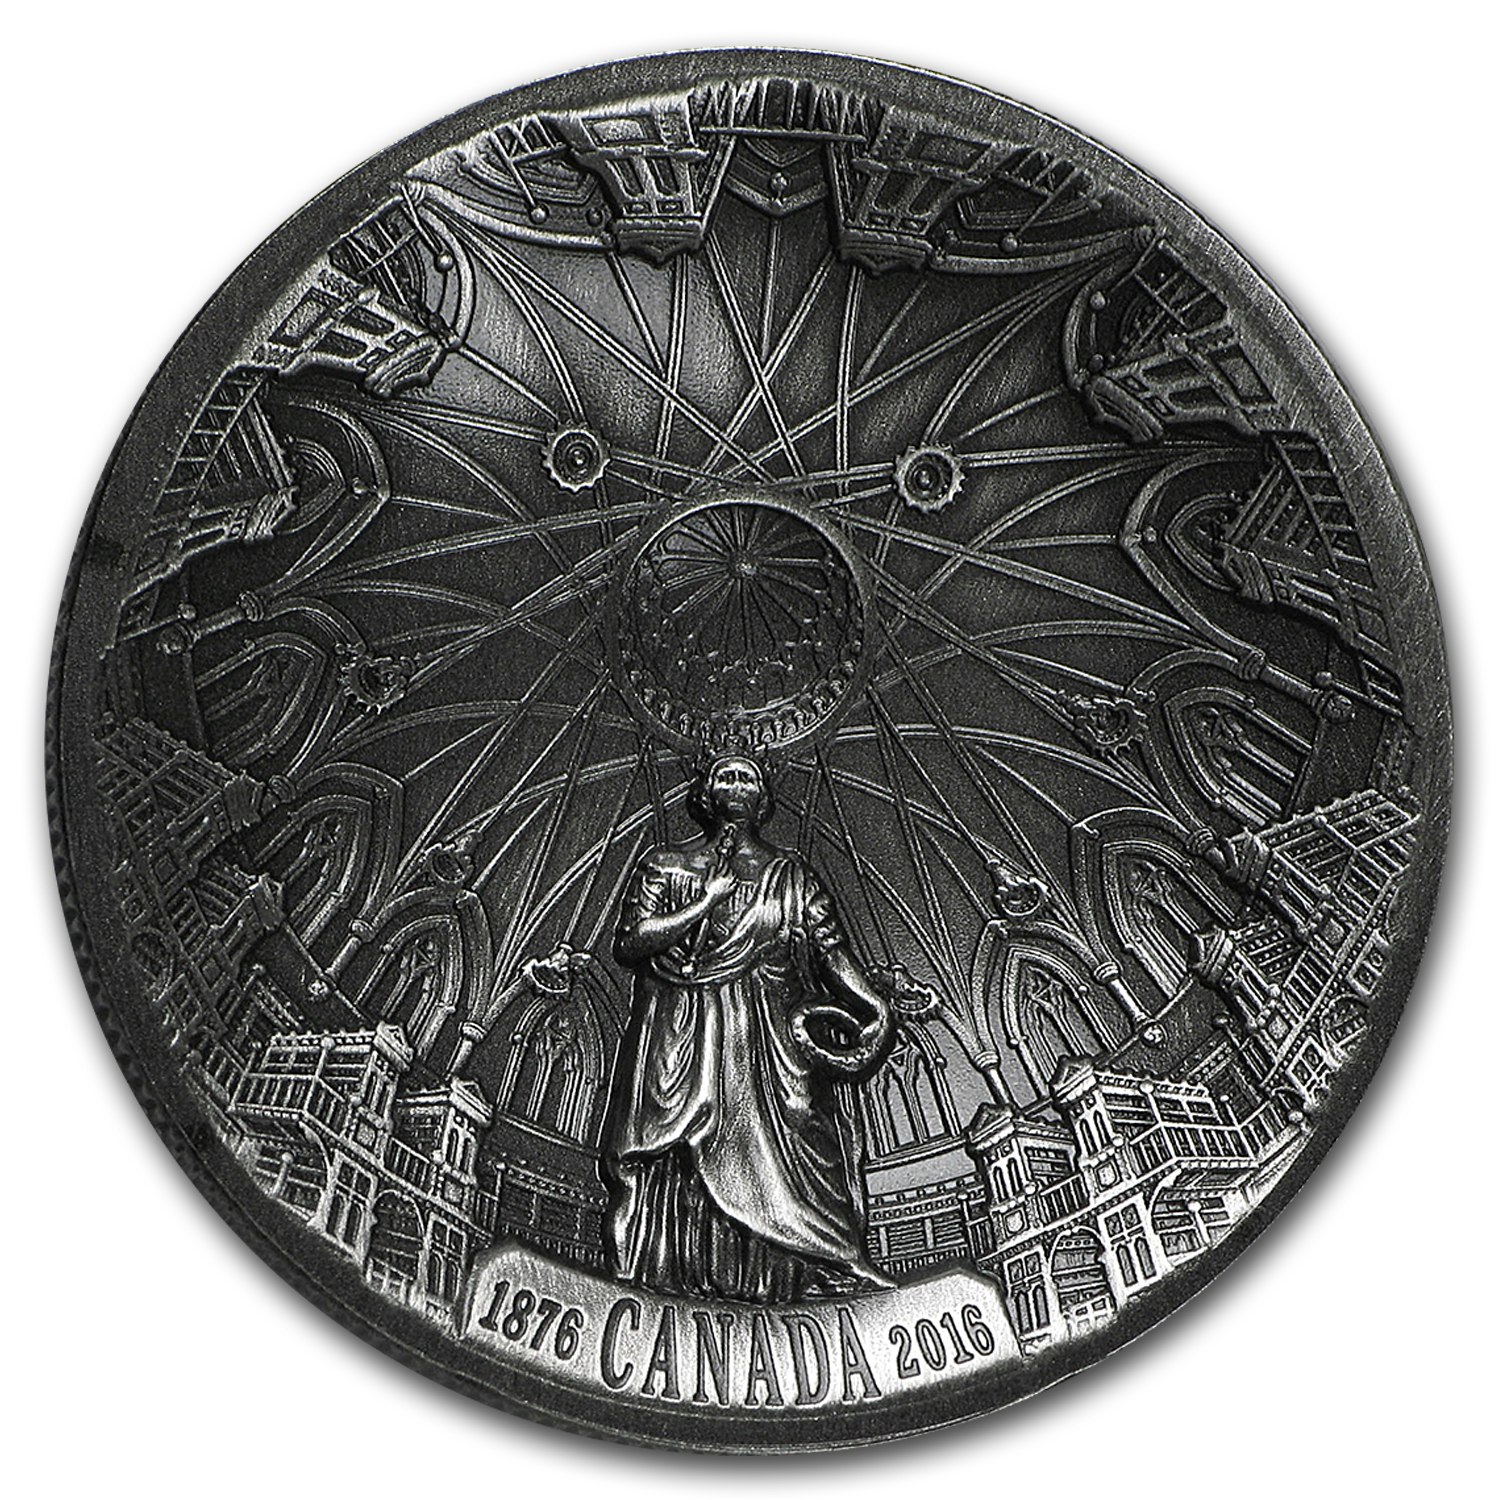 2016 Canada 1 oz Proof Silver $25 Library of Parliament